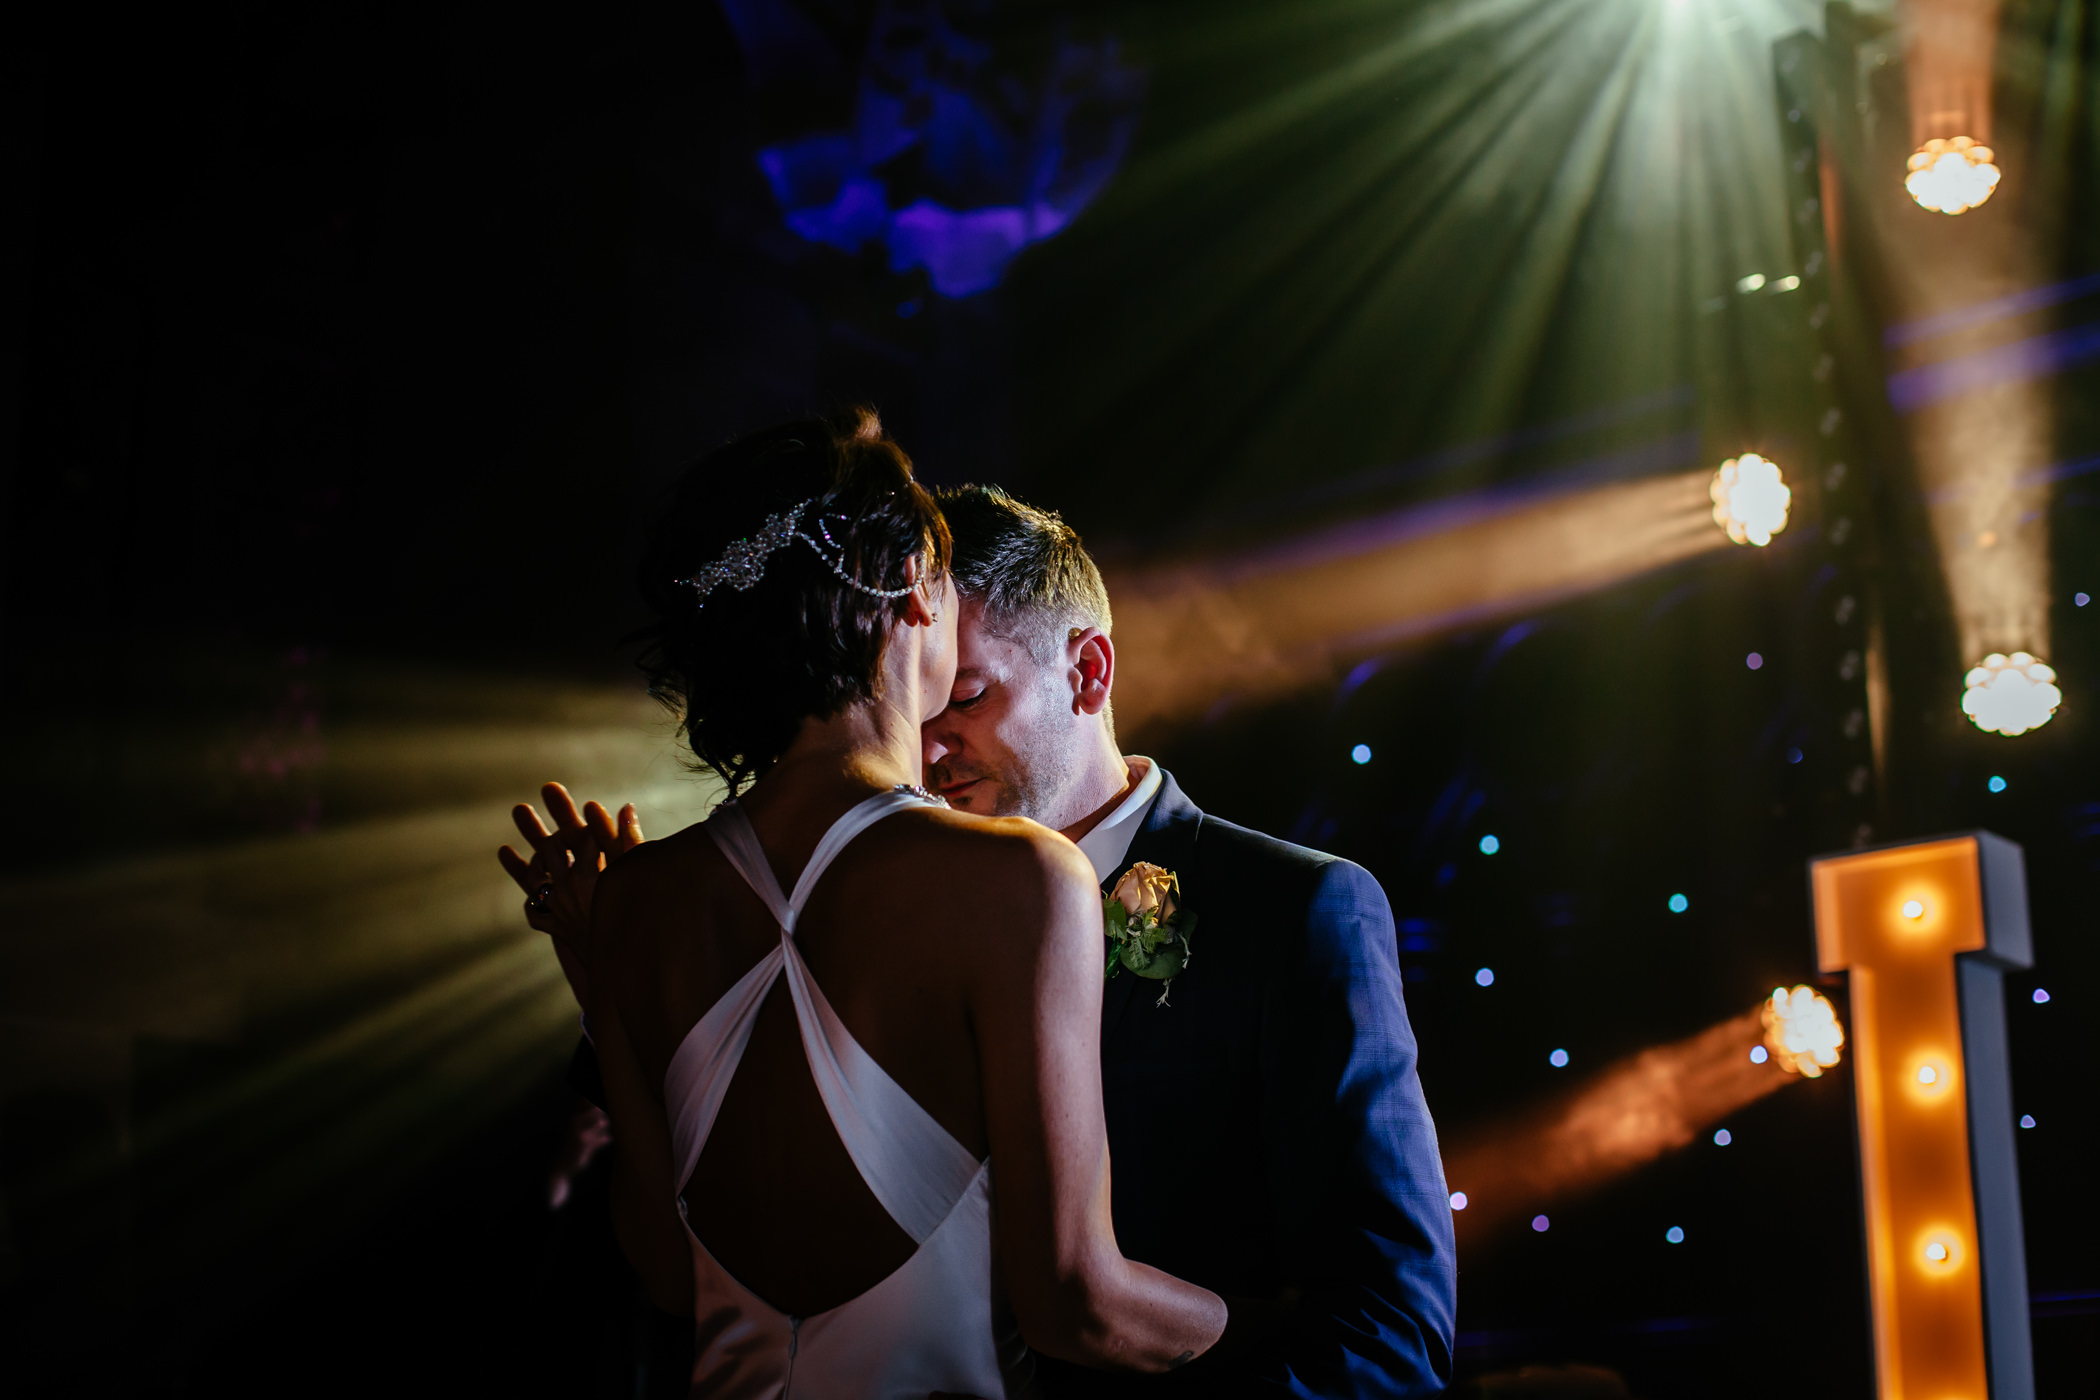 Ant & Louise NYE Peckforton Castle Wedding- Sansom Photography-54